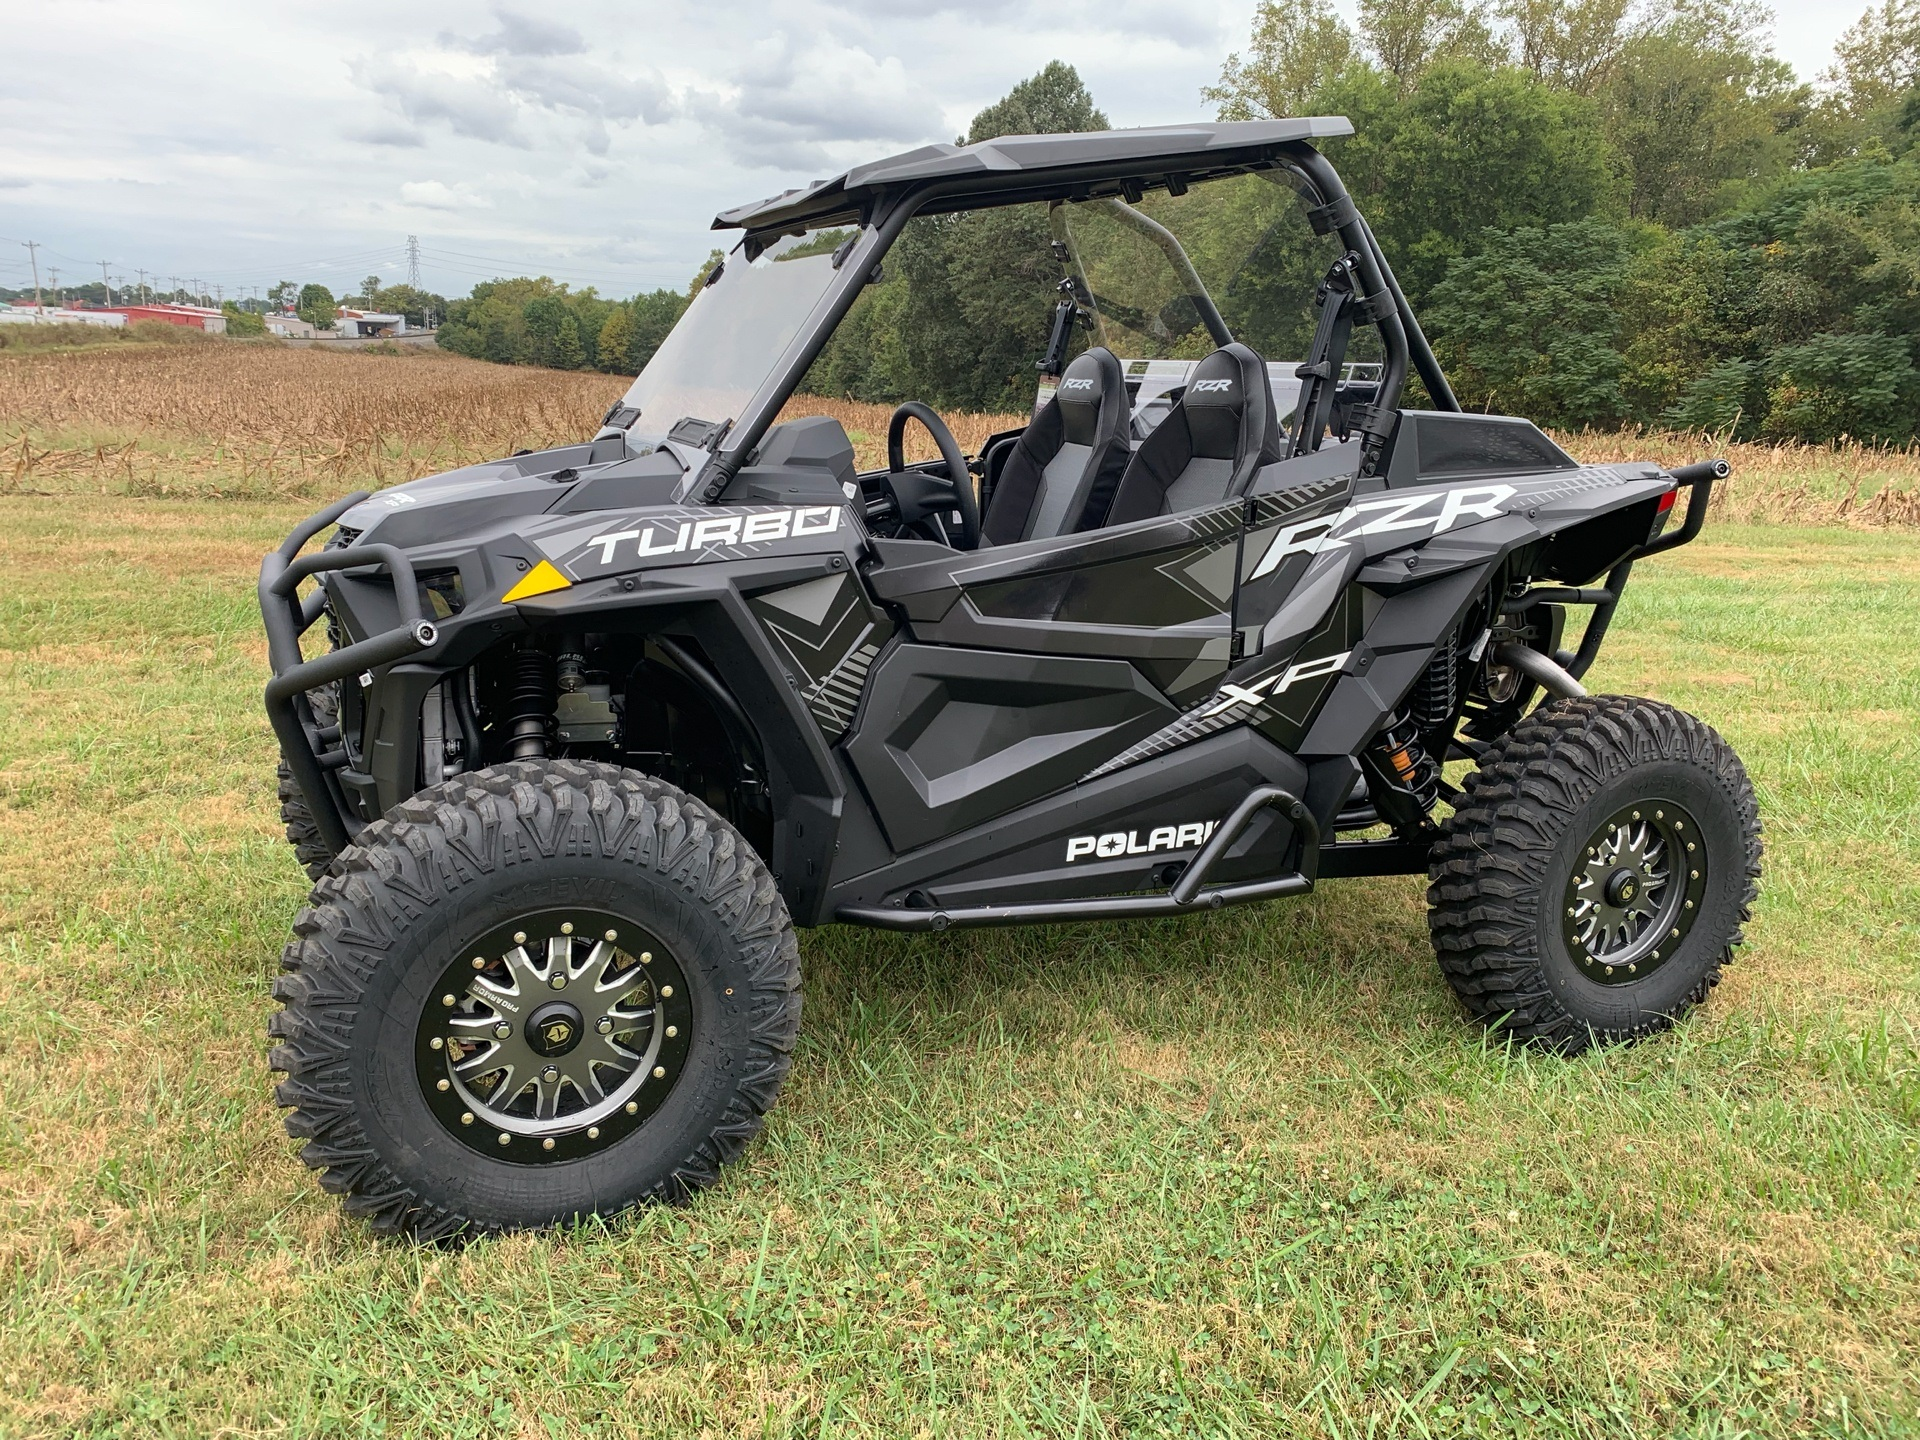 2020 Polaris RZR XP Turbo in Statesville, North Carolina - Photo 1